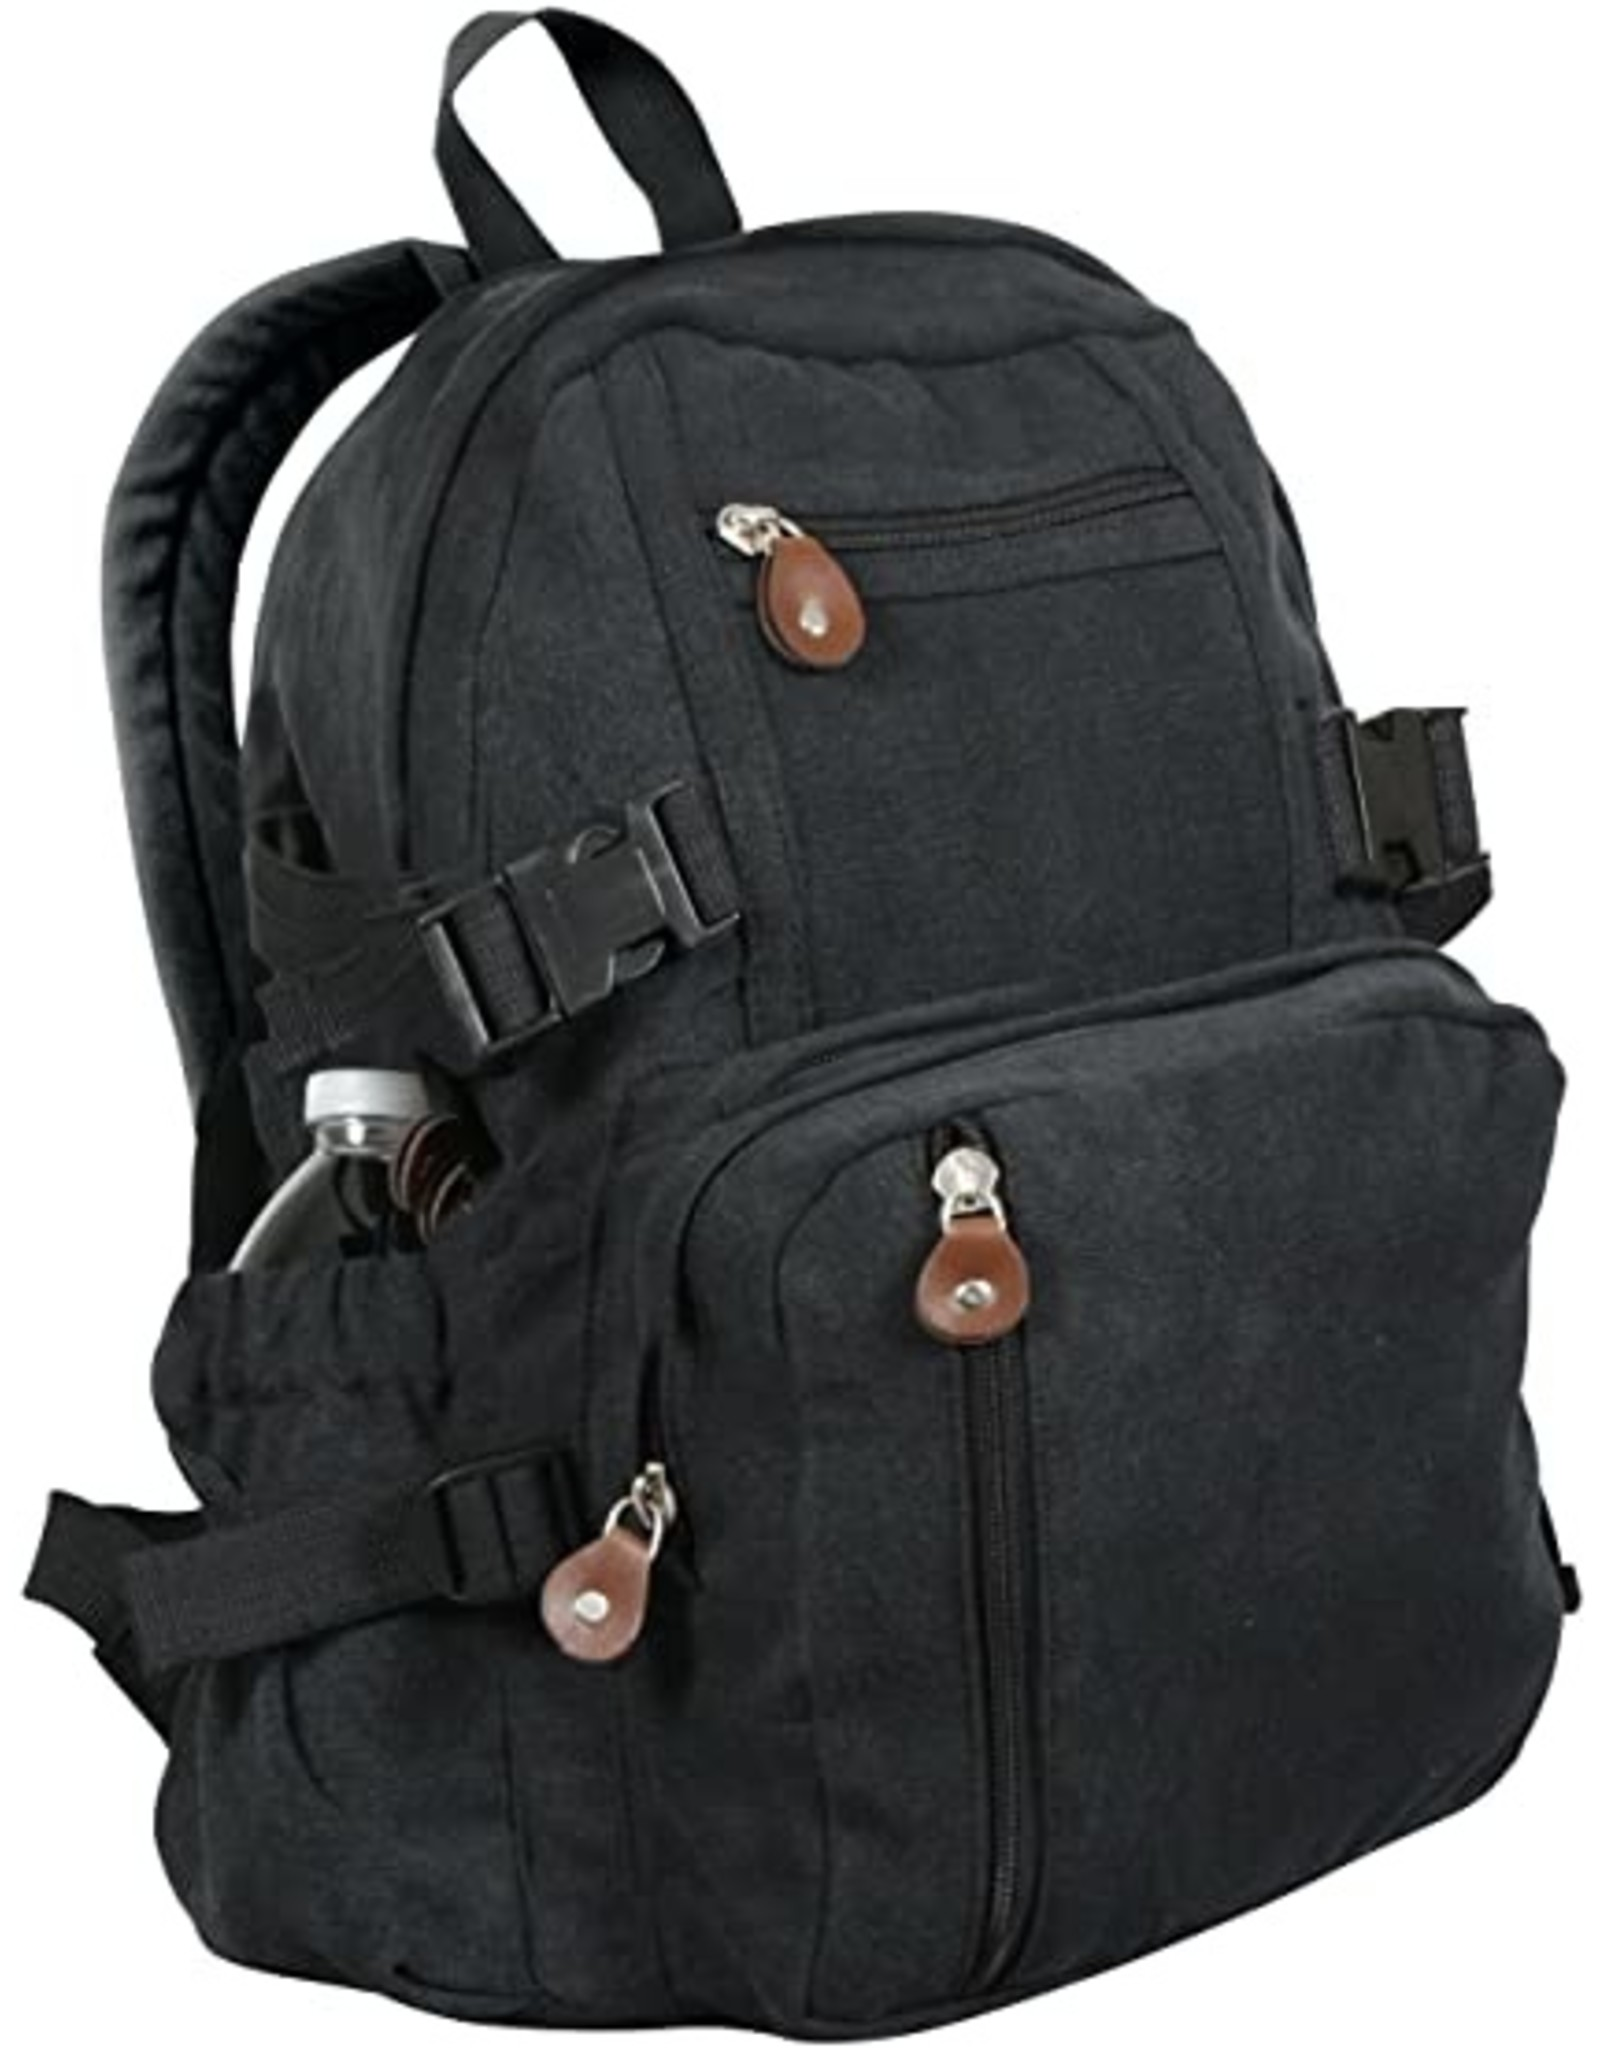 ROTHCO Vintage Canvas Mini Backpack - Black